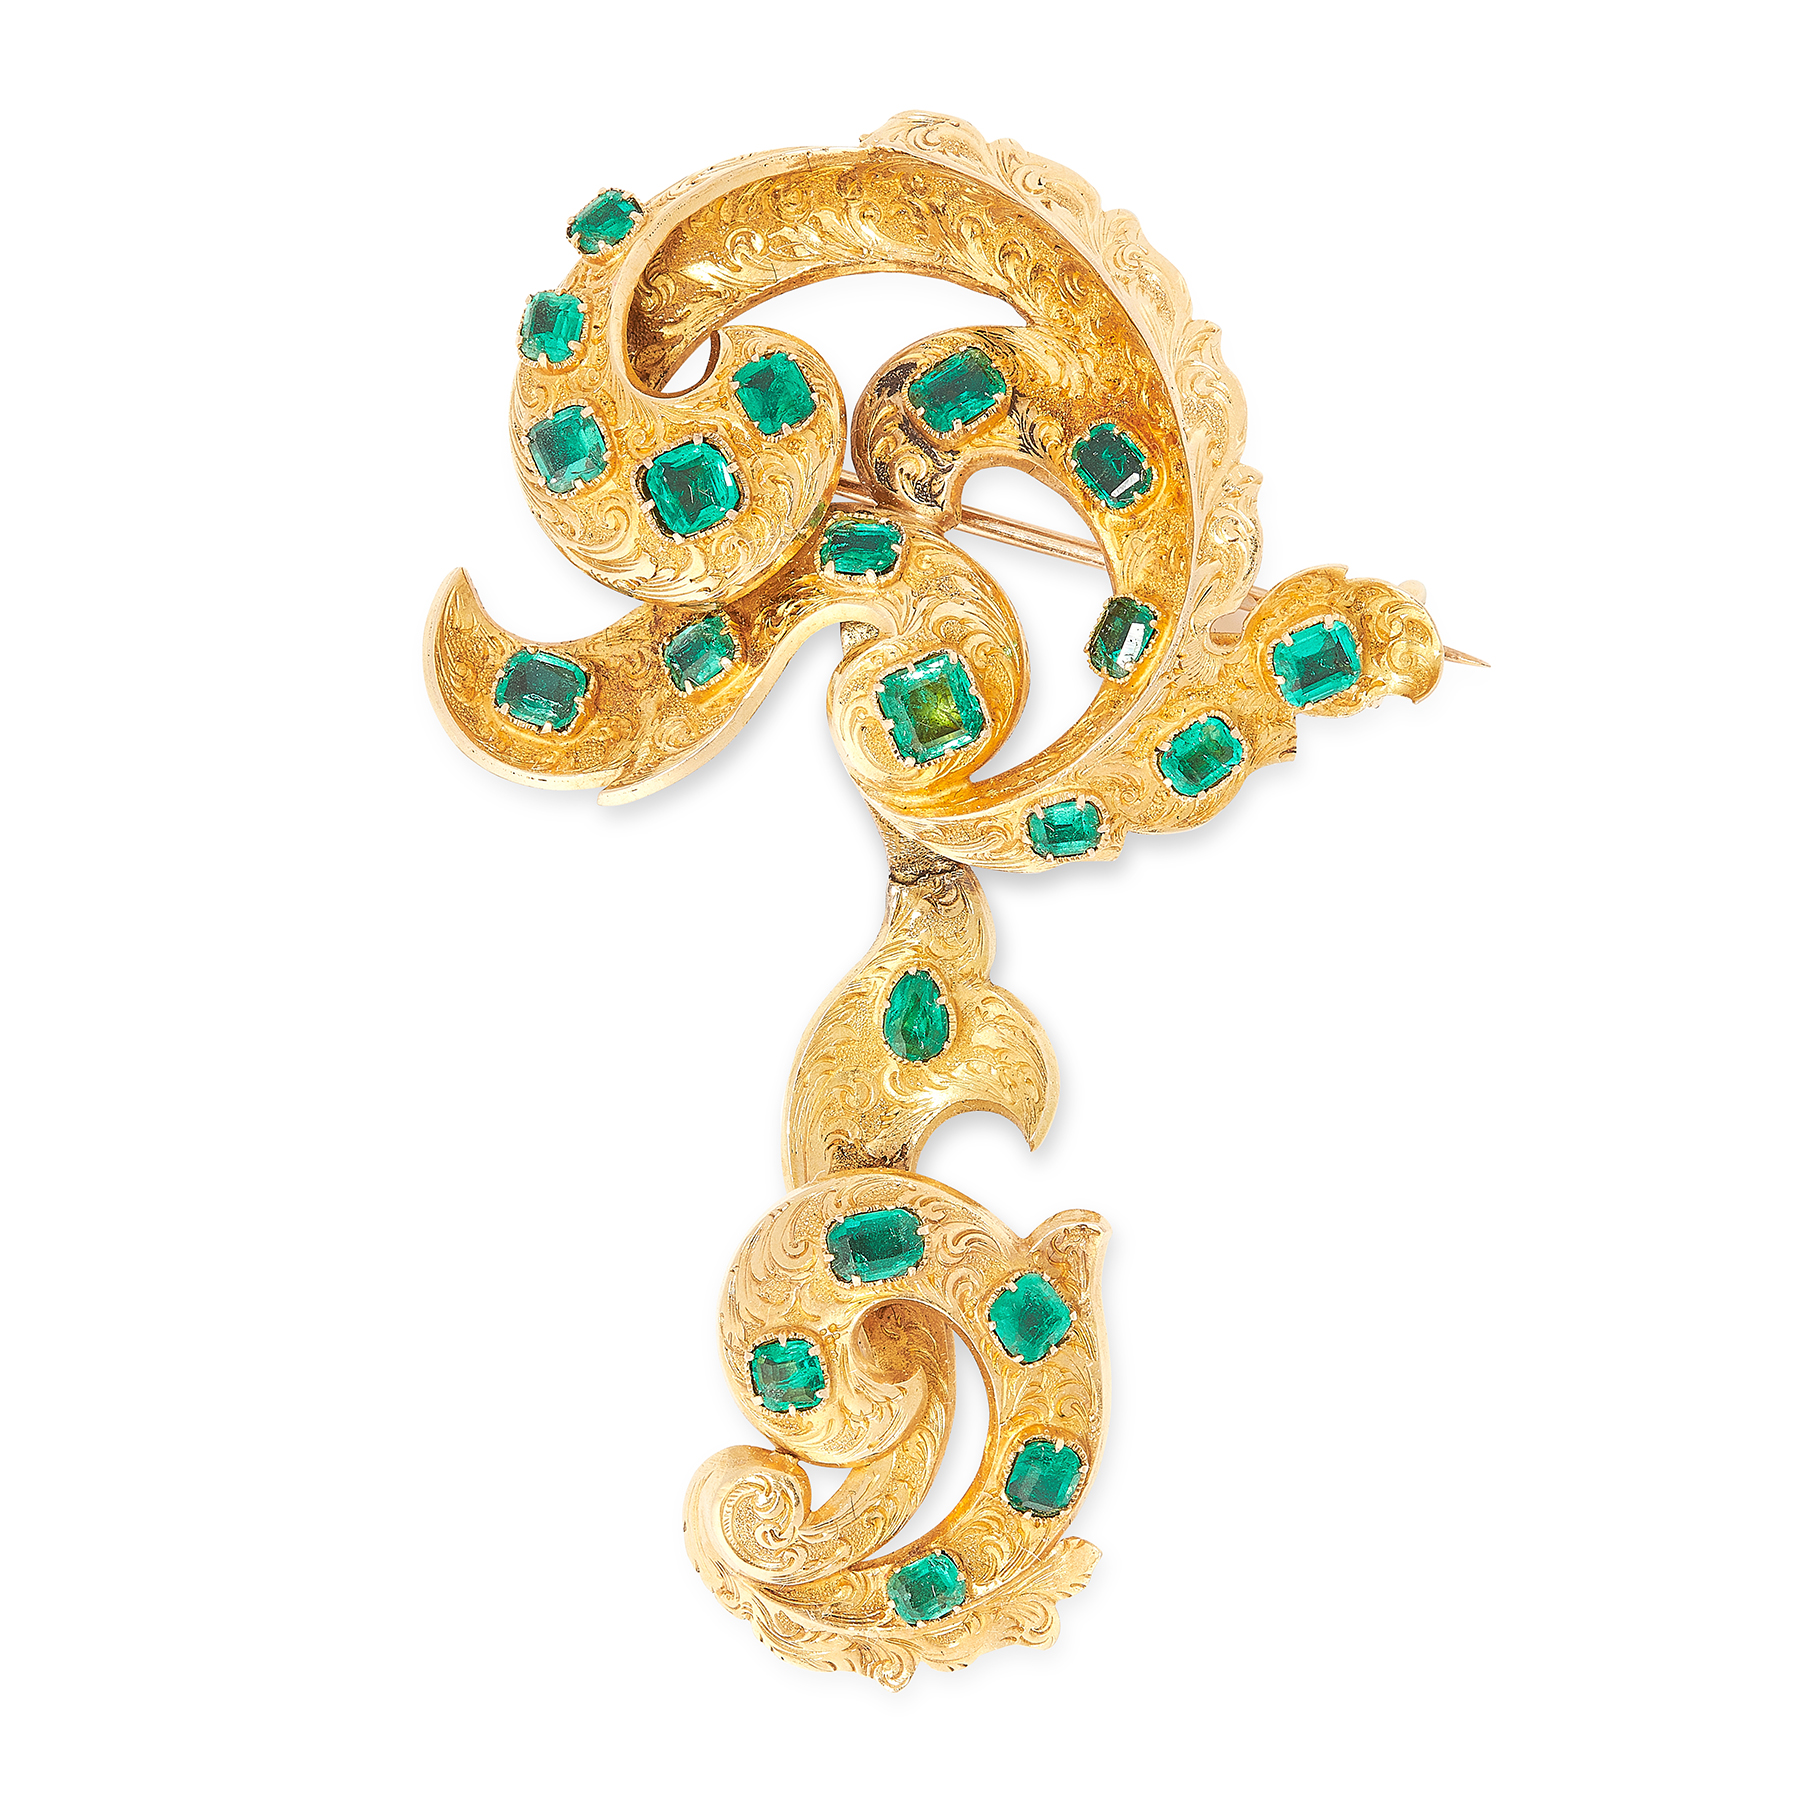 AN ANTIQUE EMERALD BROOCH, 19TH CENTURY in yellow gold, of foliate scroll design, the articulated